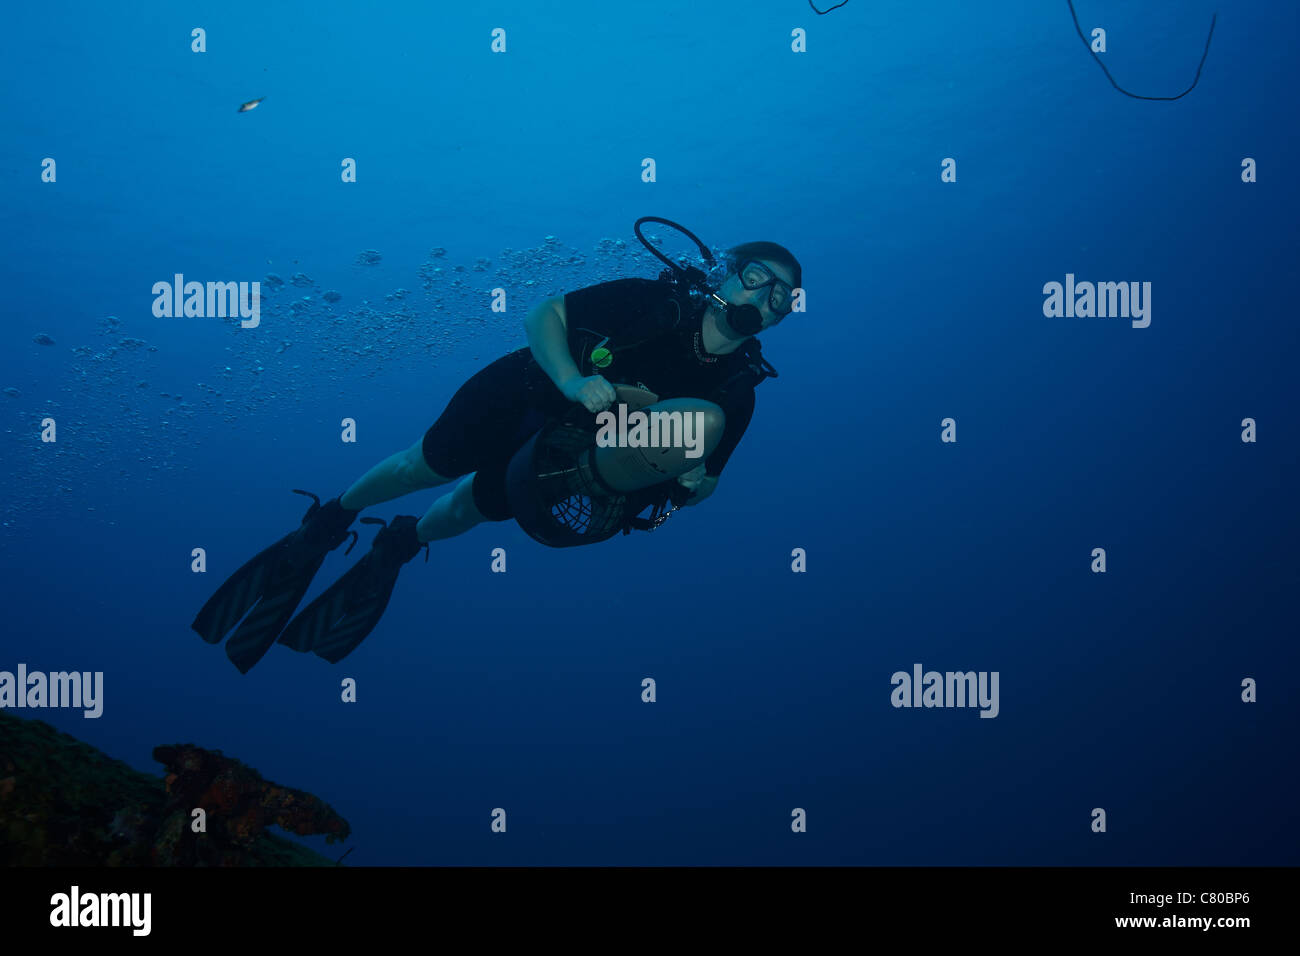 Scuba diver uses a diver propulsion vehicle to navigate the waters off the coast of Bonaire, Caribbean Netherlands. - Stock Image